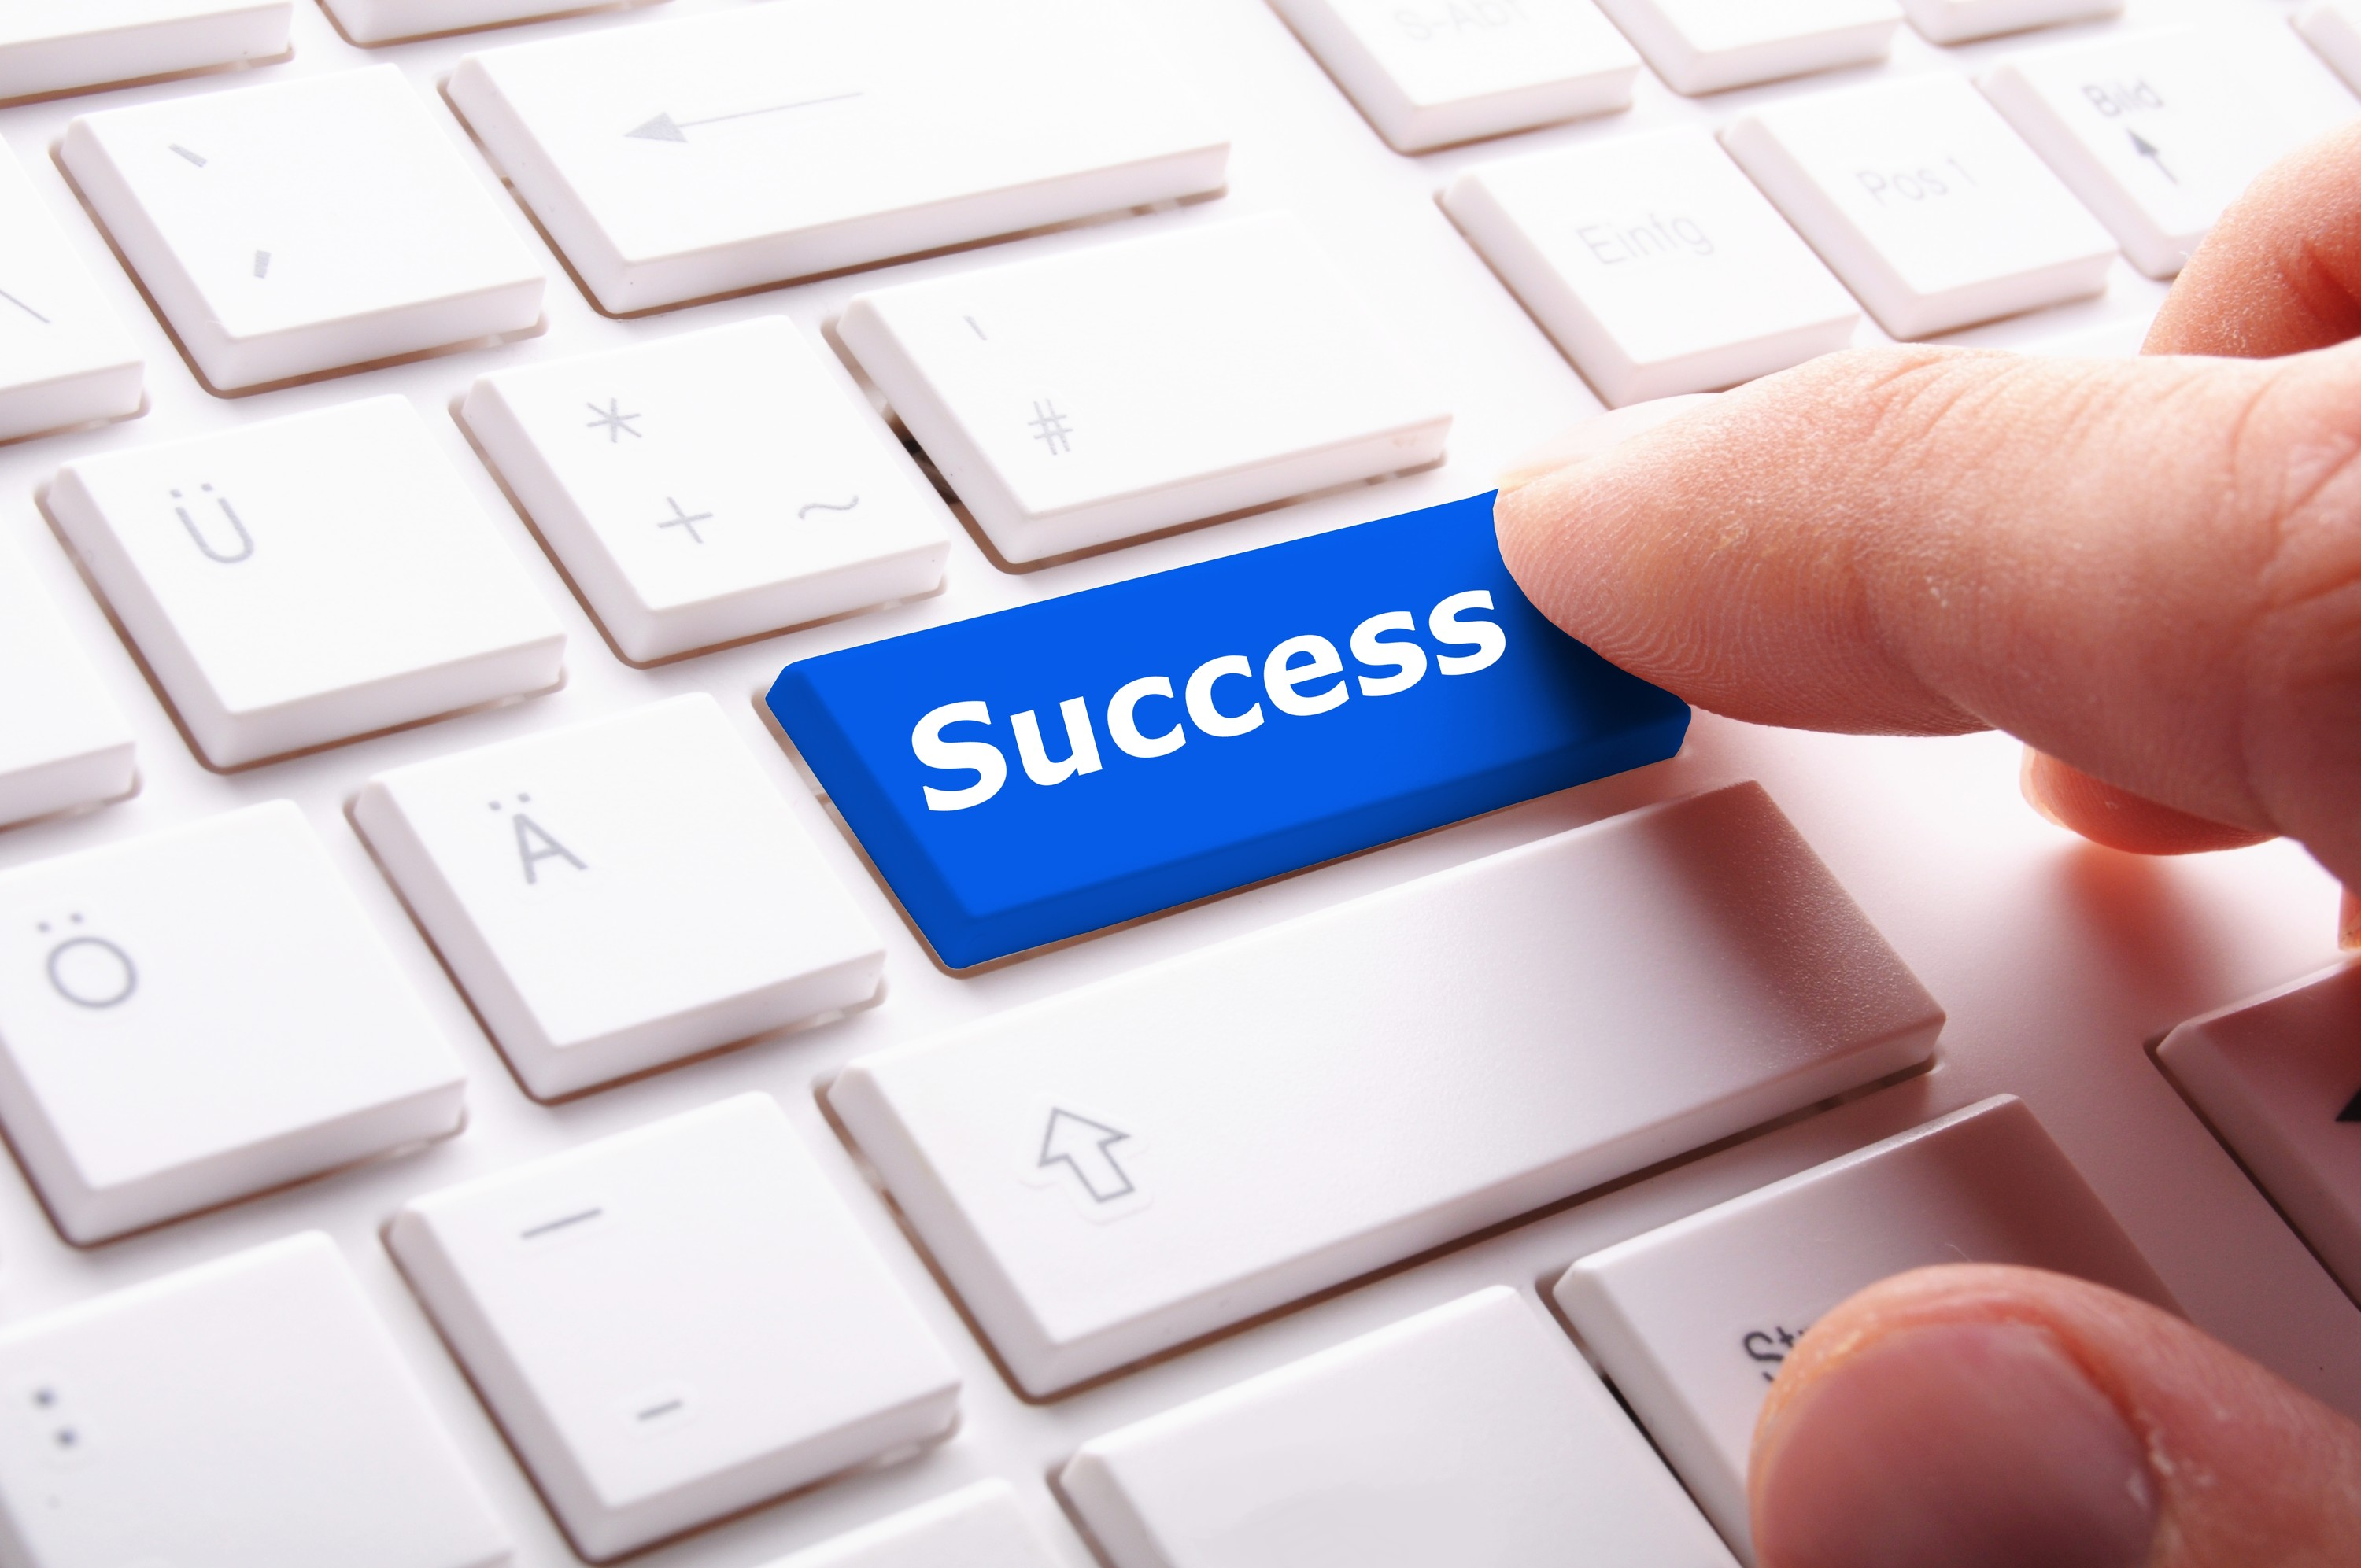 Successbutton